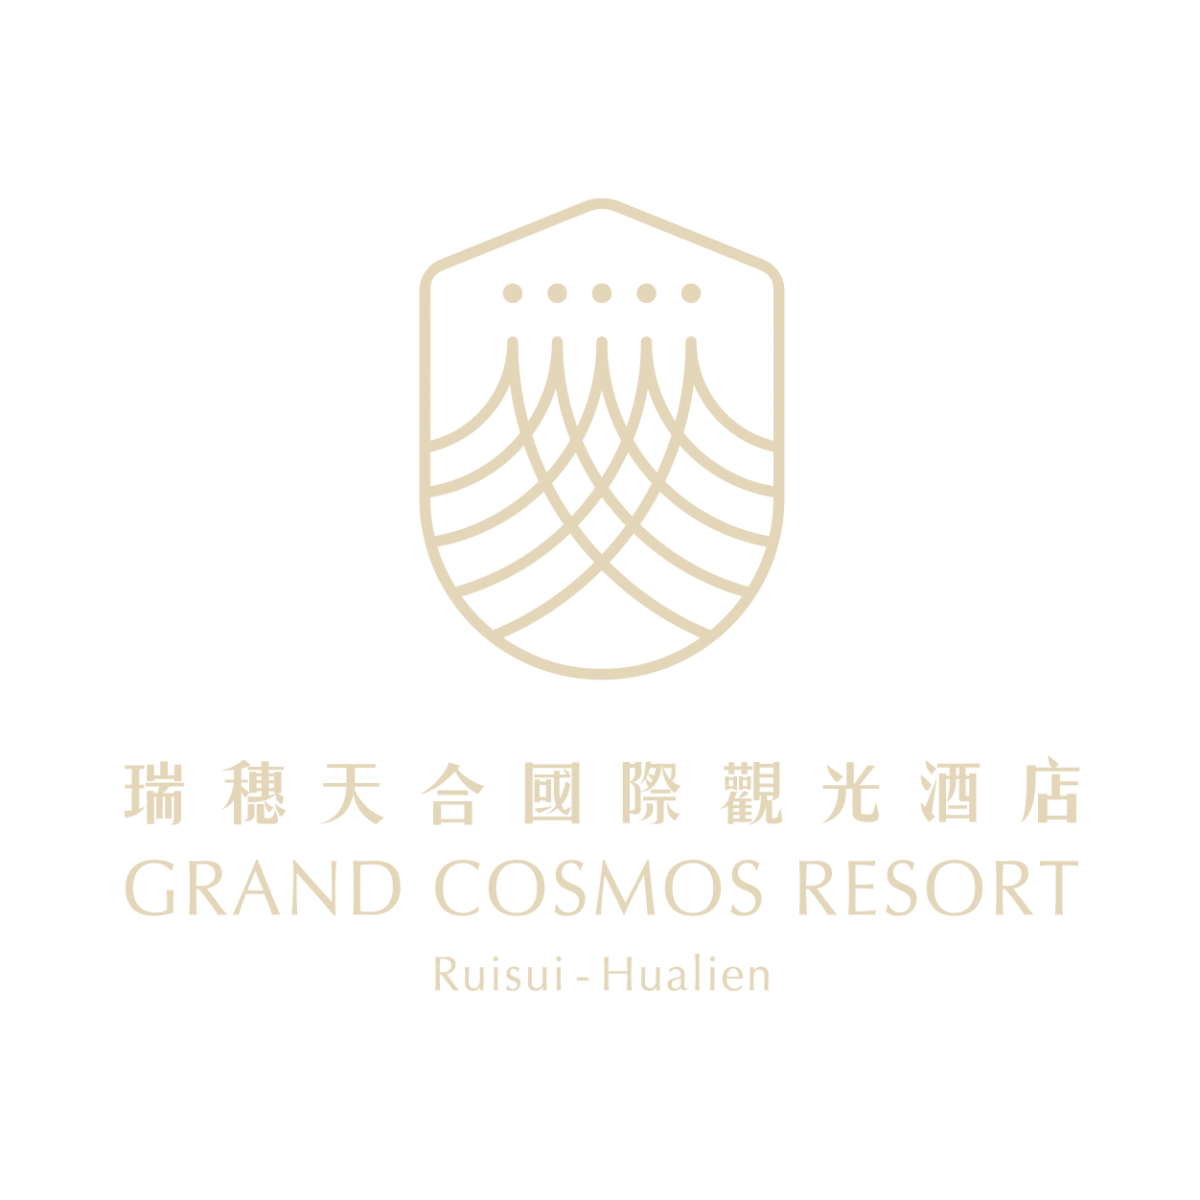 Grand Cosmos Resort Ruisui, Hualien 瑞穗春天國際觀光酒店